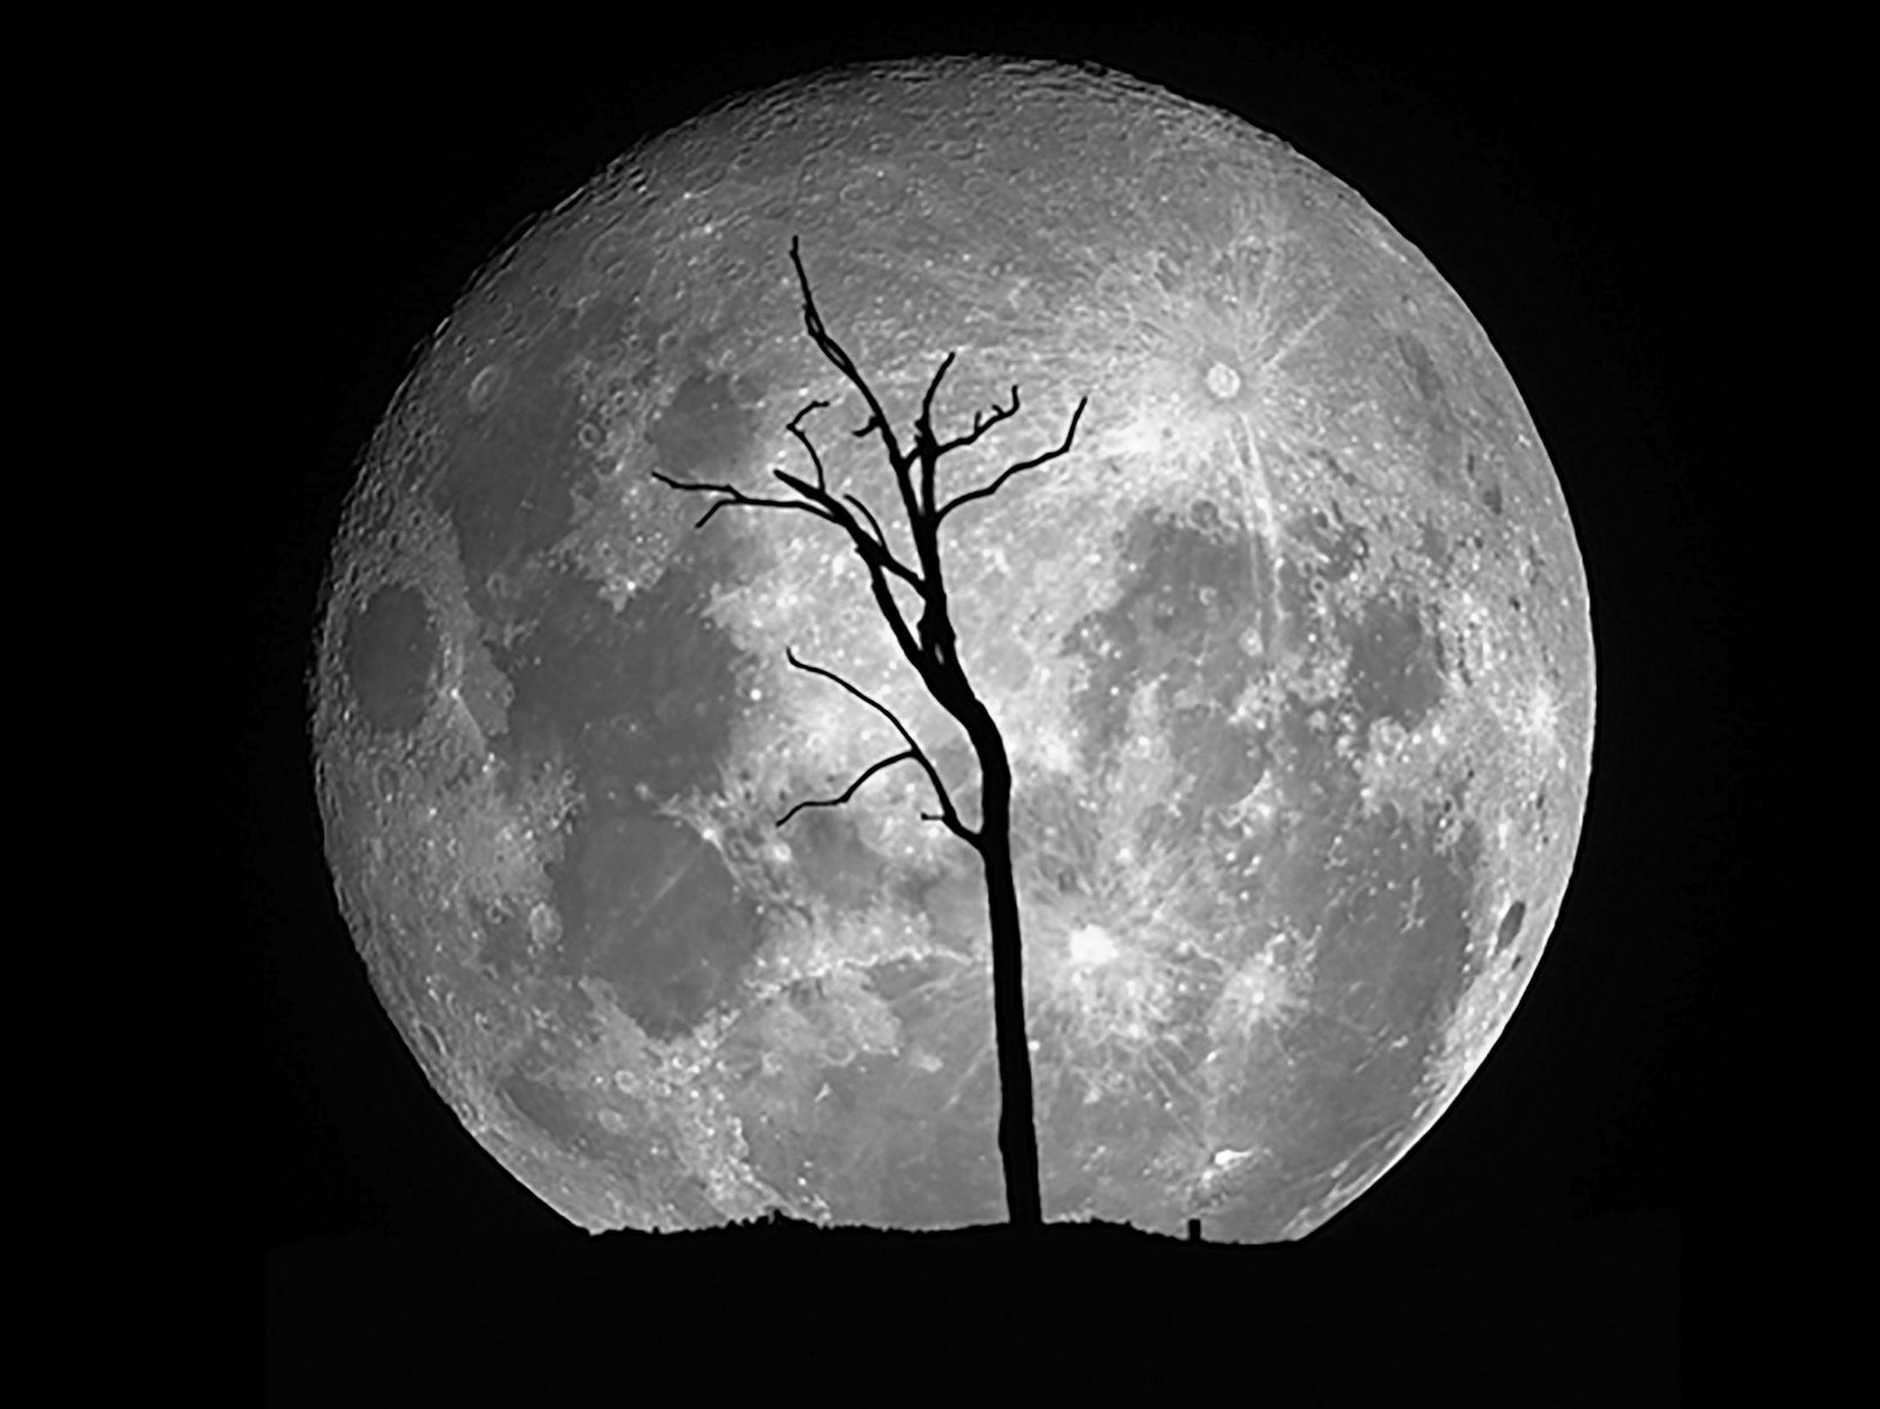 THE MOON: Our nearest neighbour in space has fascinated humans for centuries.